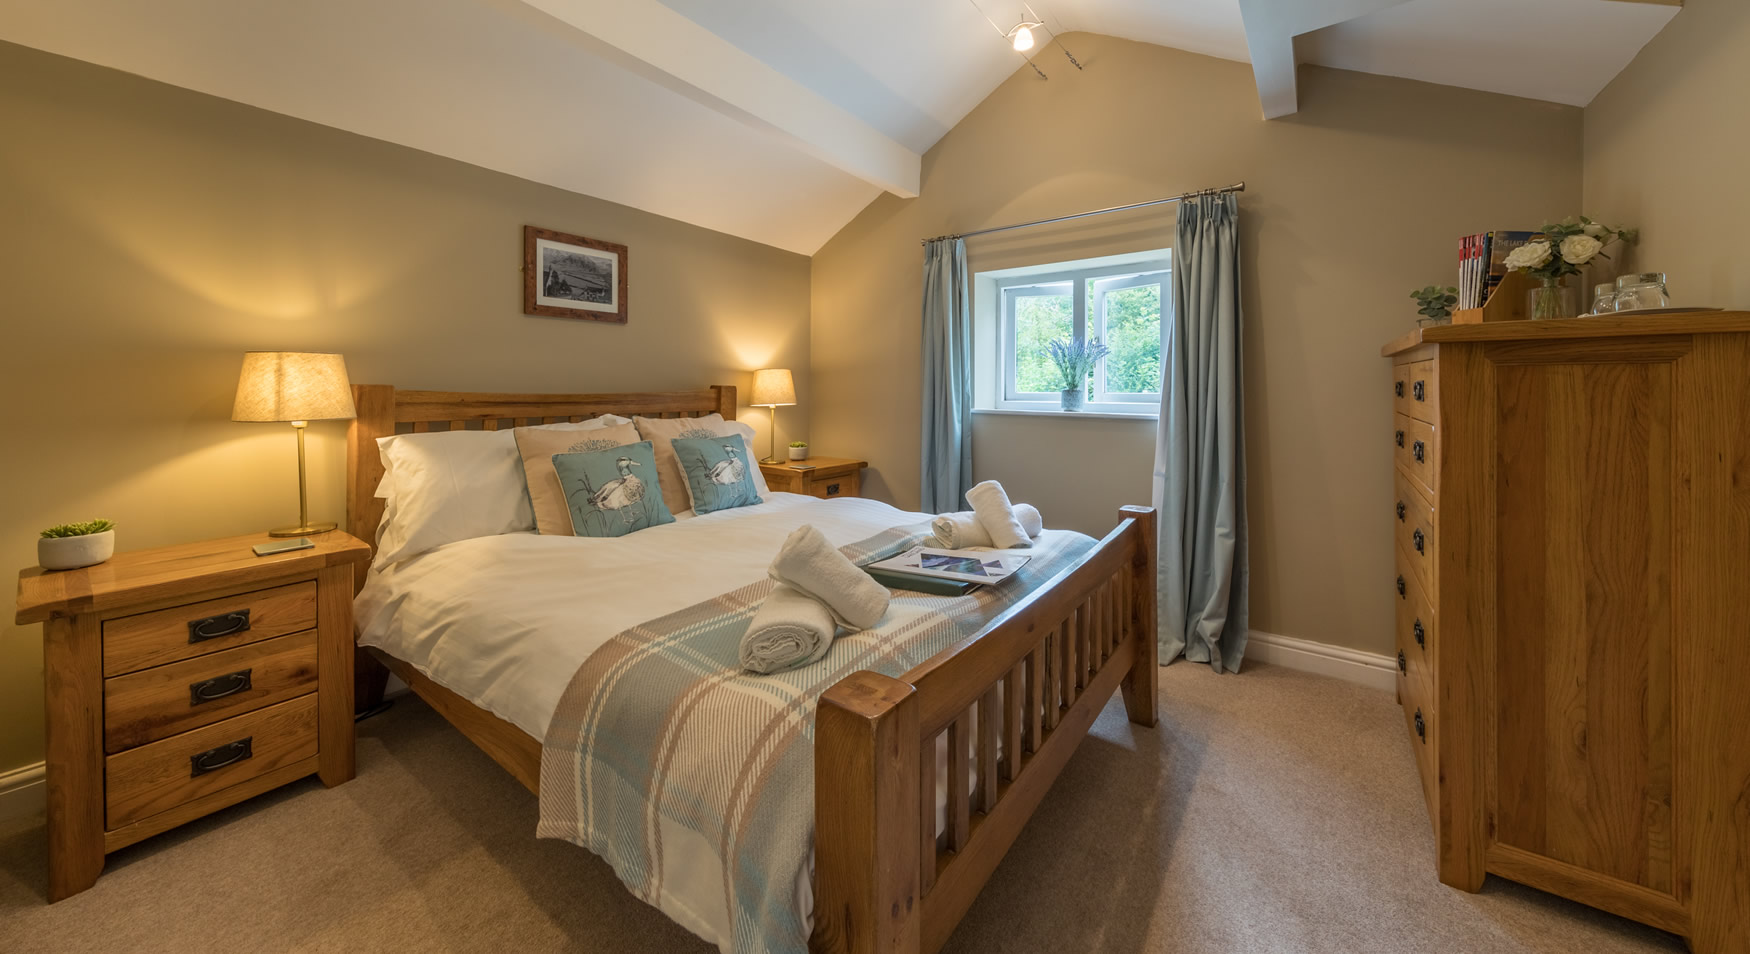 Newly refurbished bedrooms